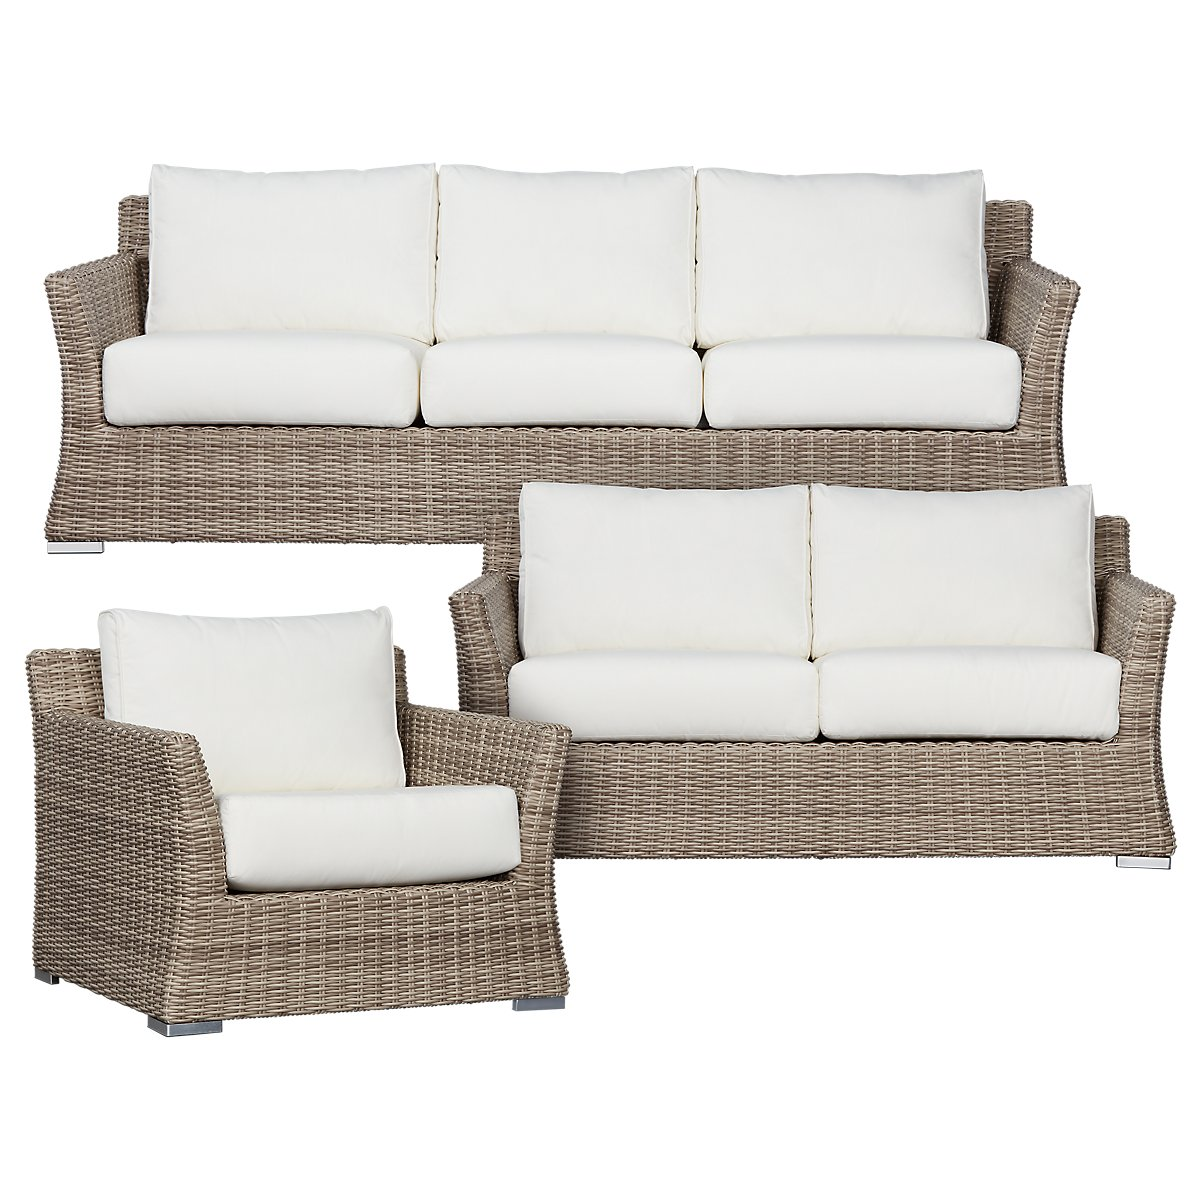 City Furniture: Raleigh White Woven Outdoor Living Room Set